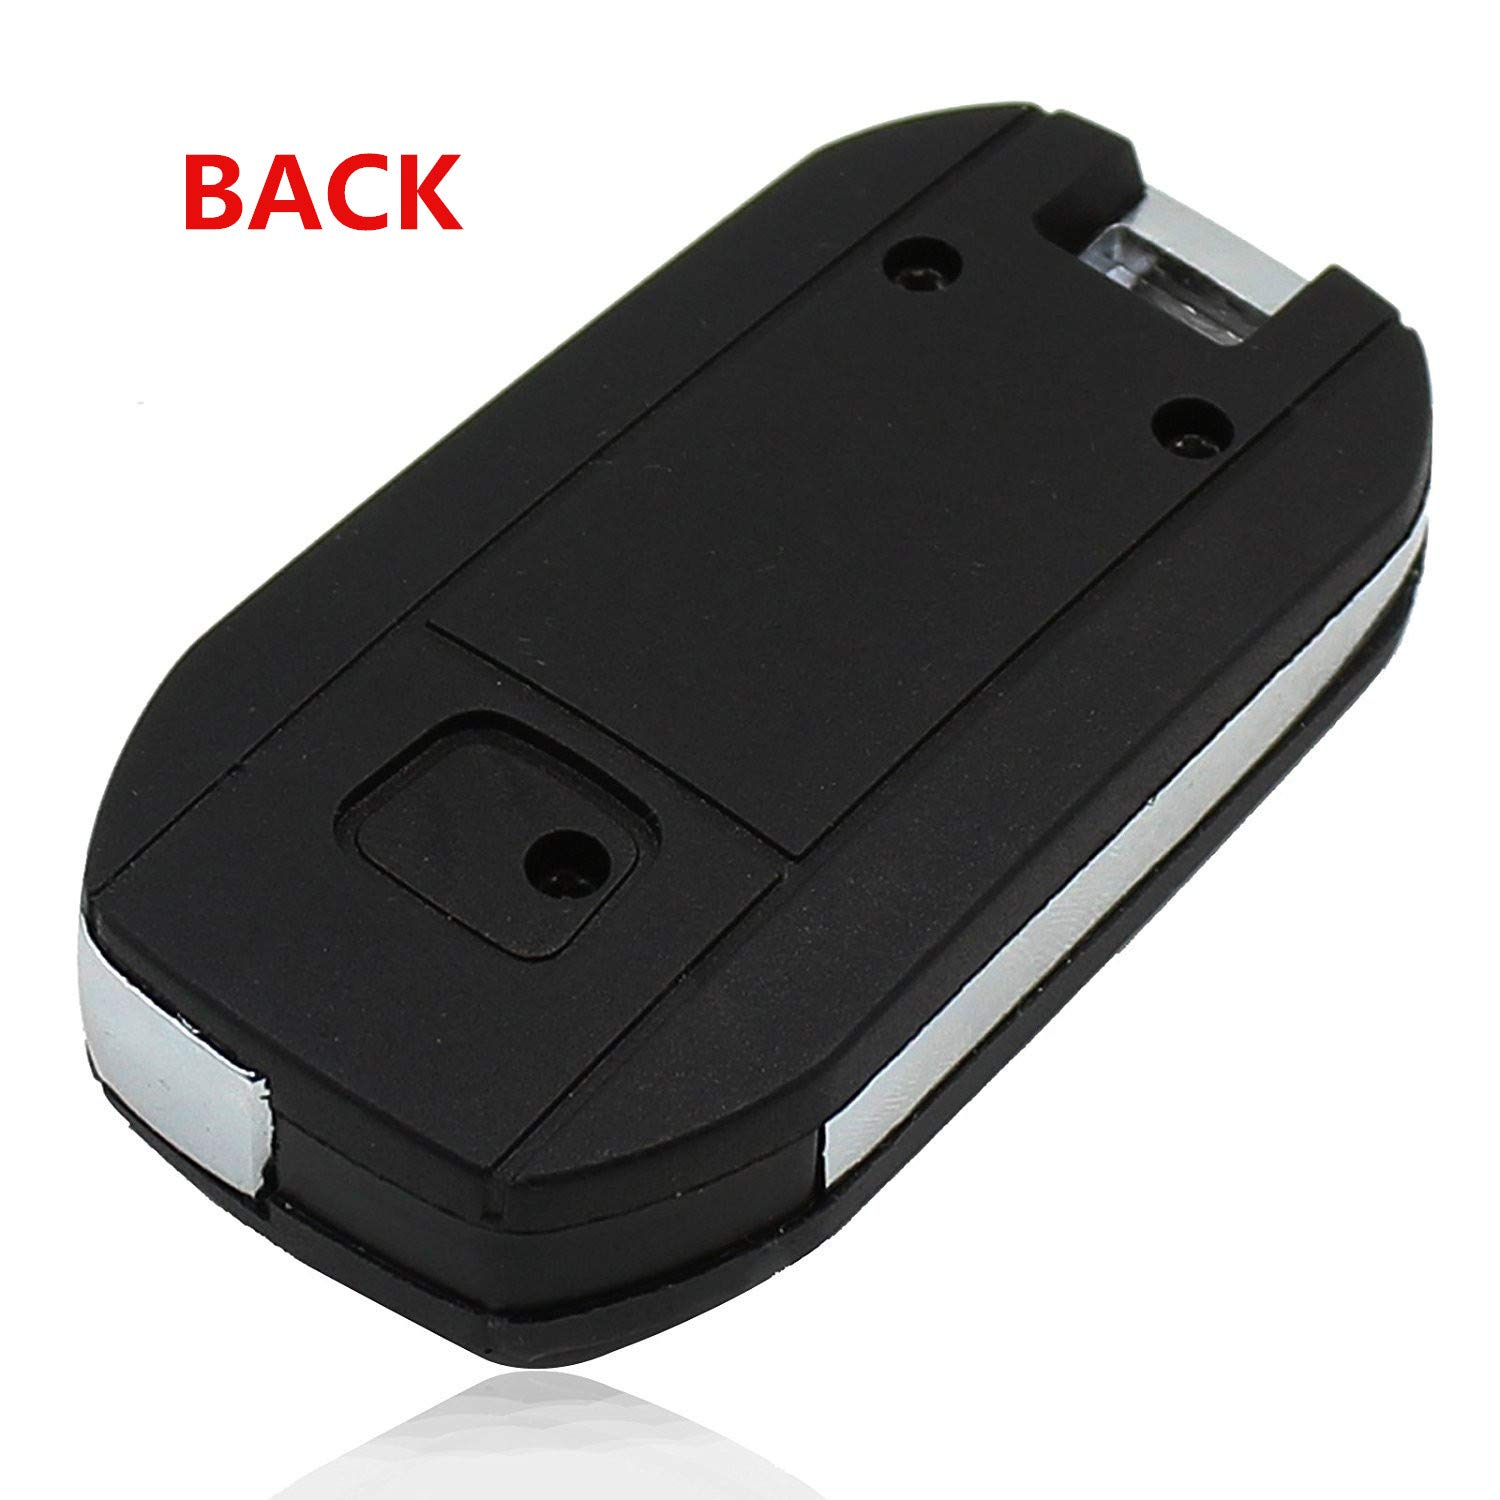 Heart Horse 3+1 Buttons Flip Remote Key Fob Case Key Shell for Honda Fit City CRV Odyssey Accord Fob Cover XIN HUI